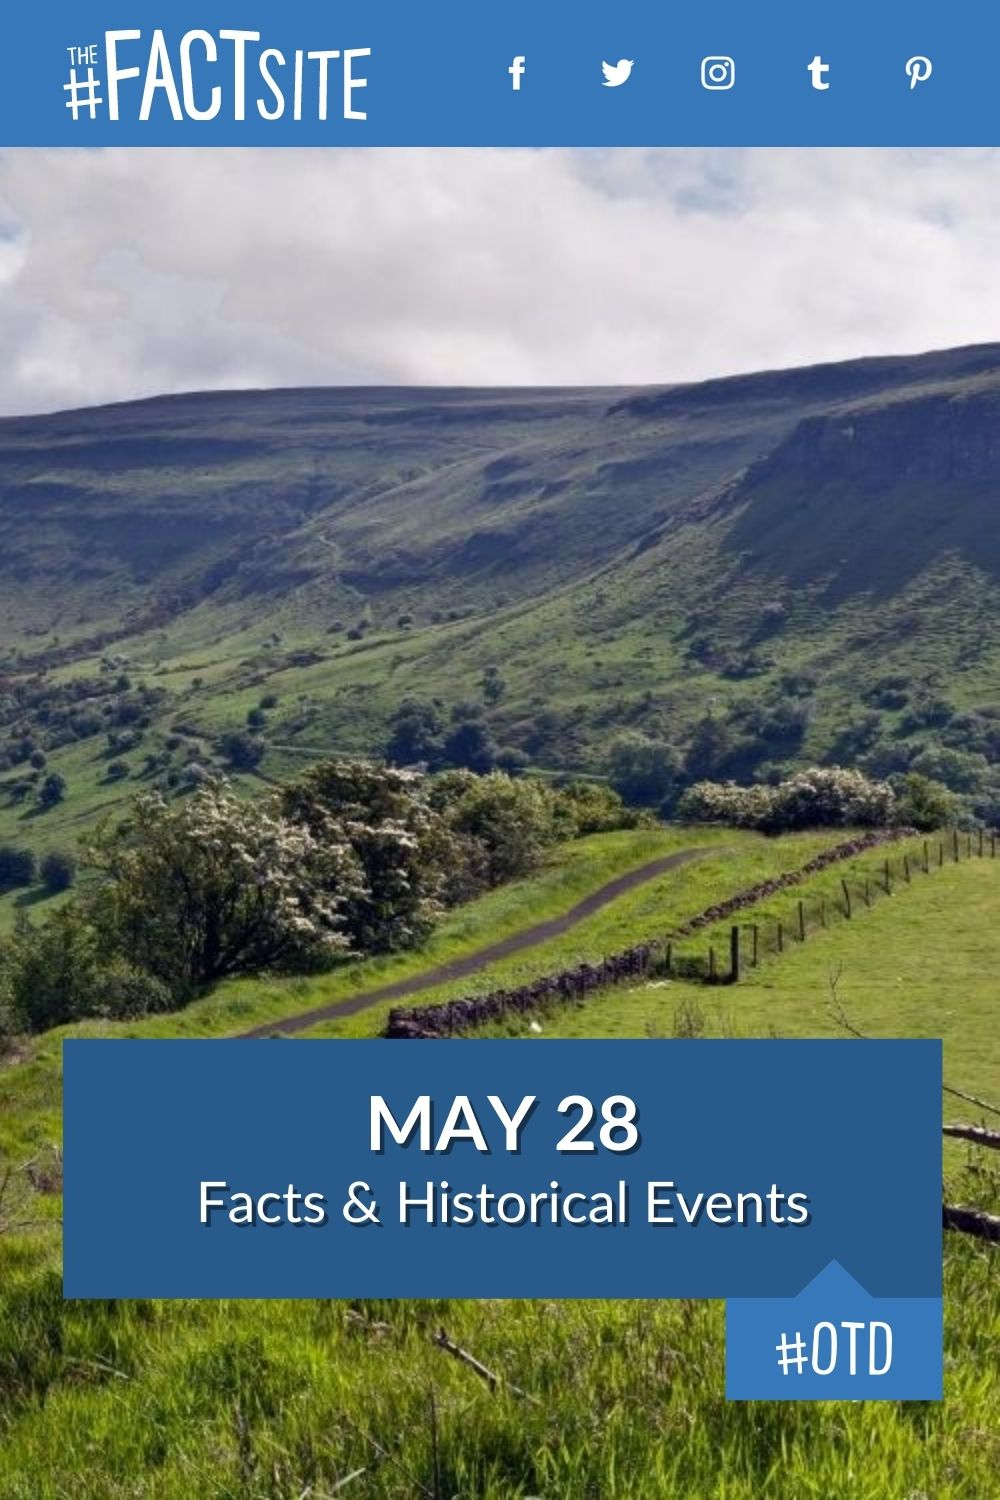 Facts & Historic Events That Happened on May 28